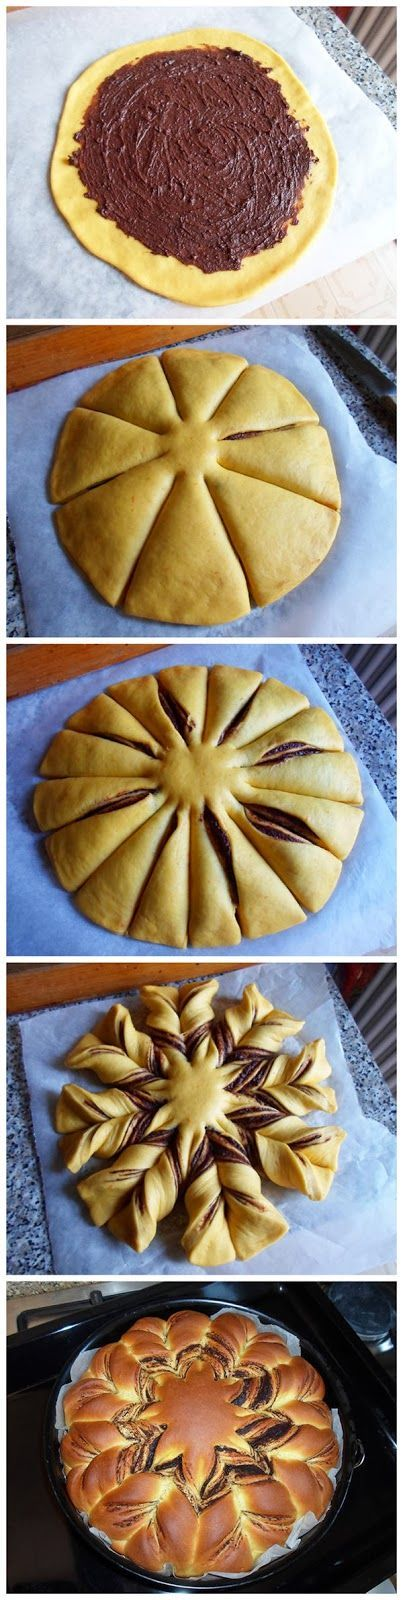 Star shaped Brioche Bread: